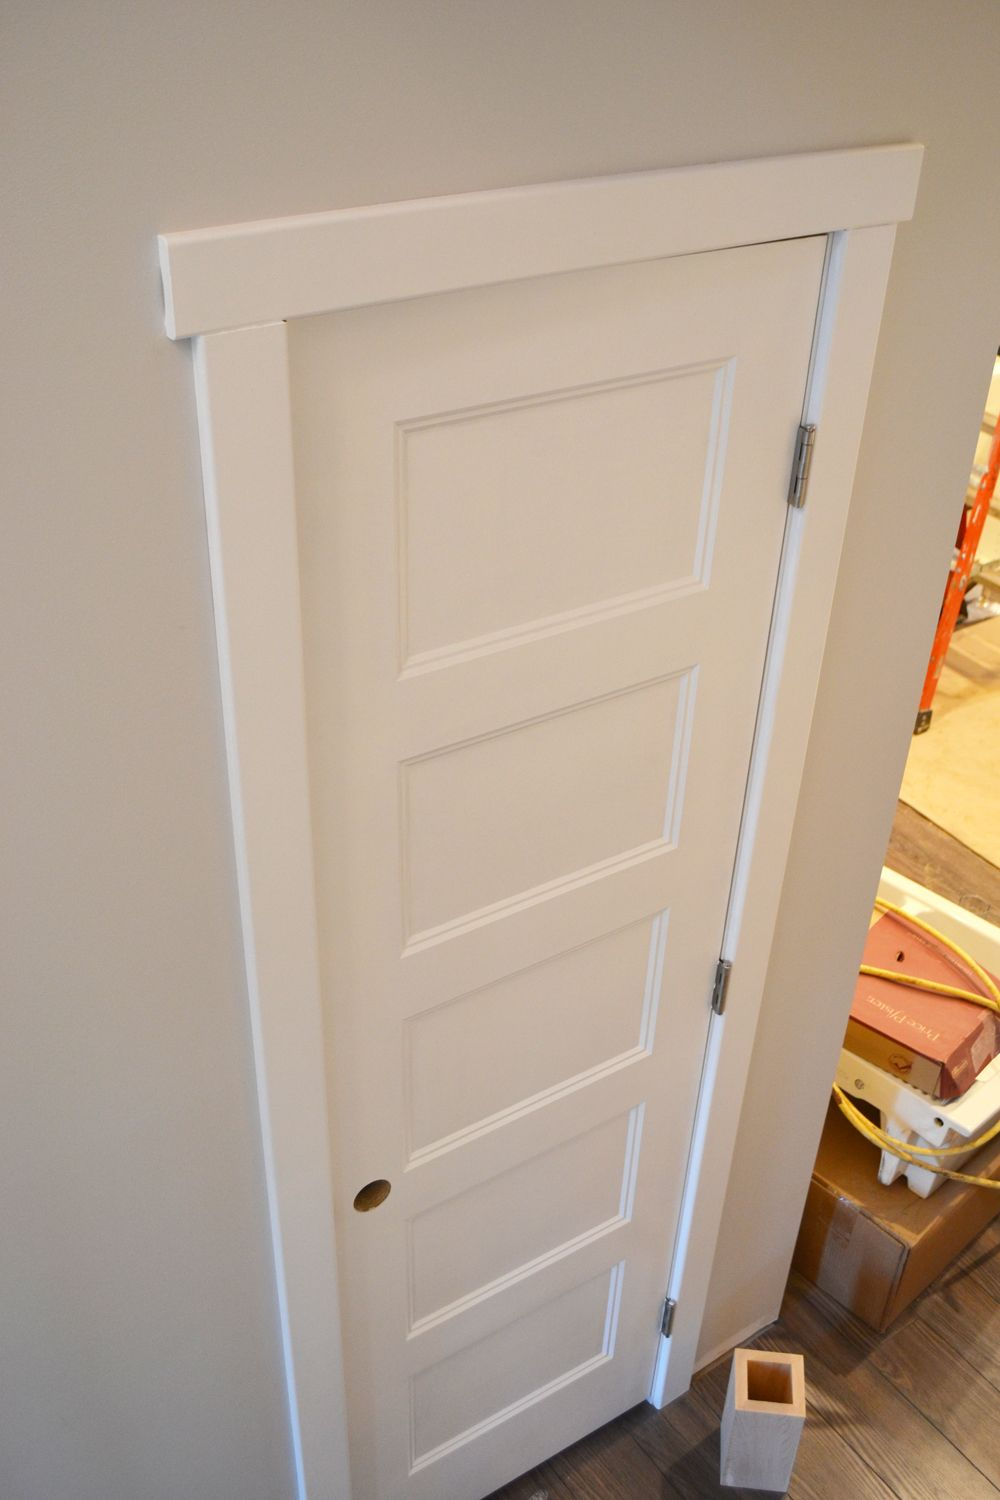 Single panel interior door shaker style google search the painting doors with a streak free finish where we found our gorgeous shaker style doors our diy house eventelaan Choice Image